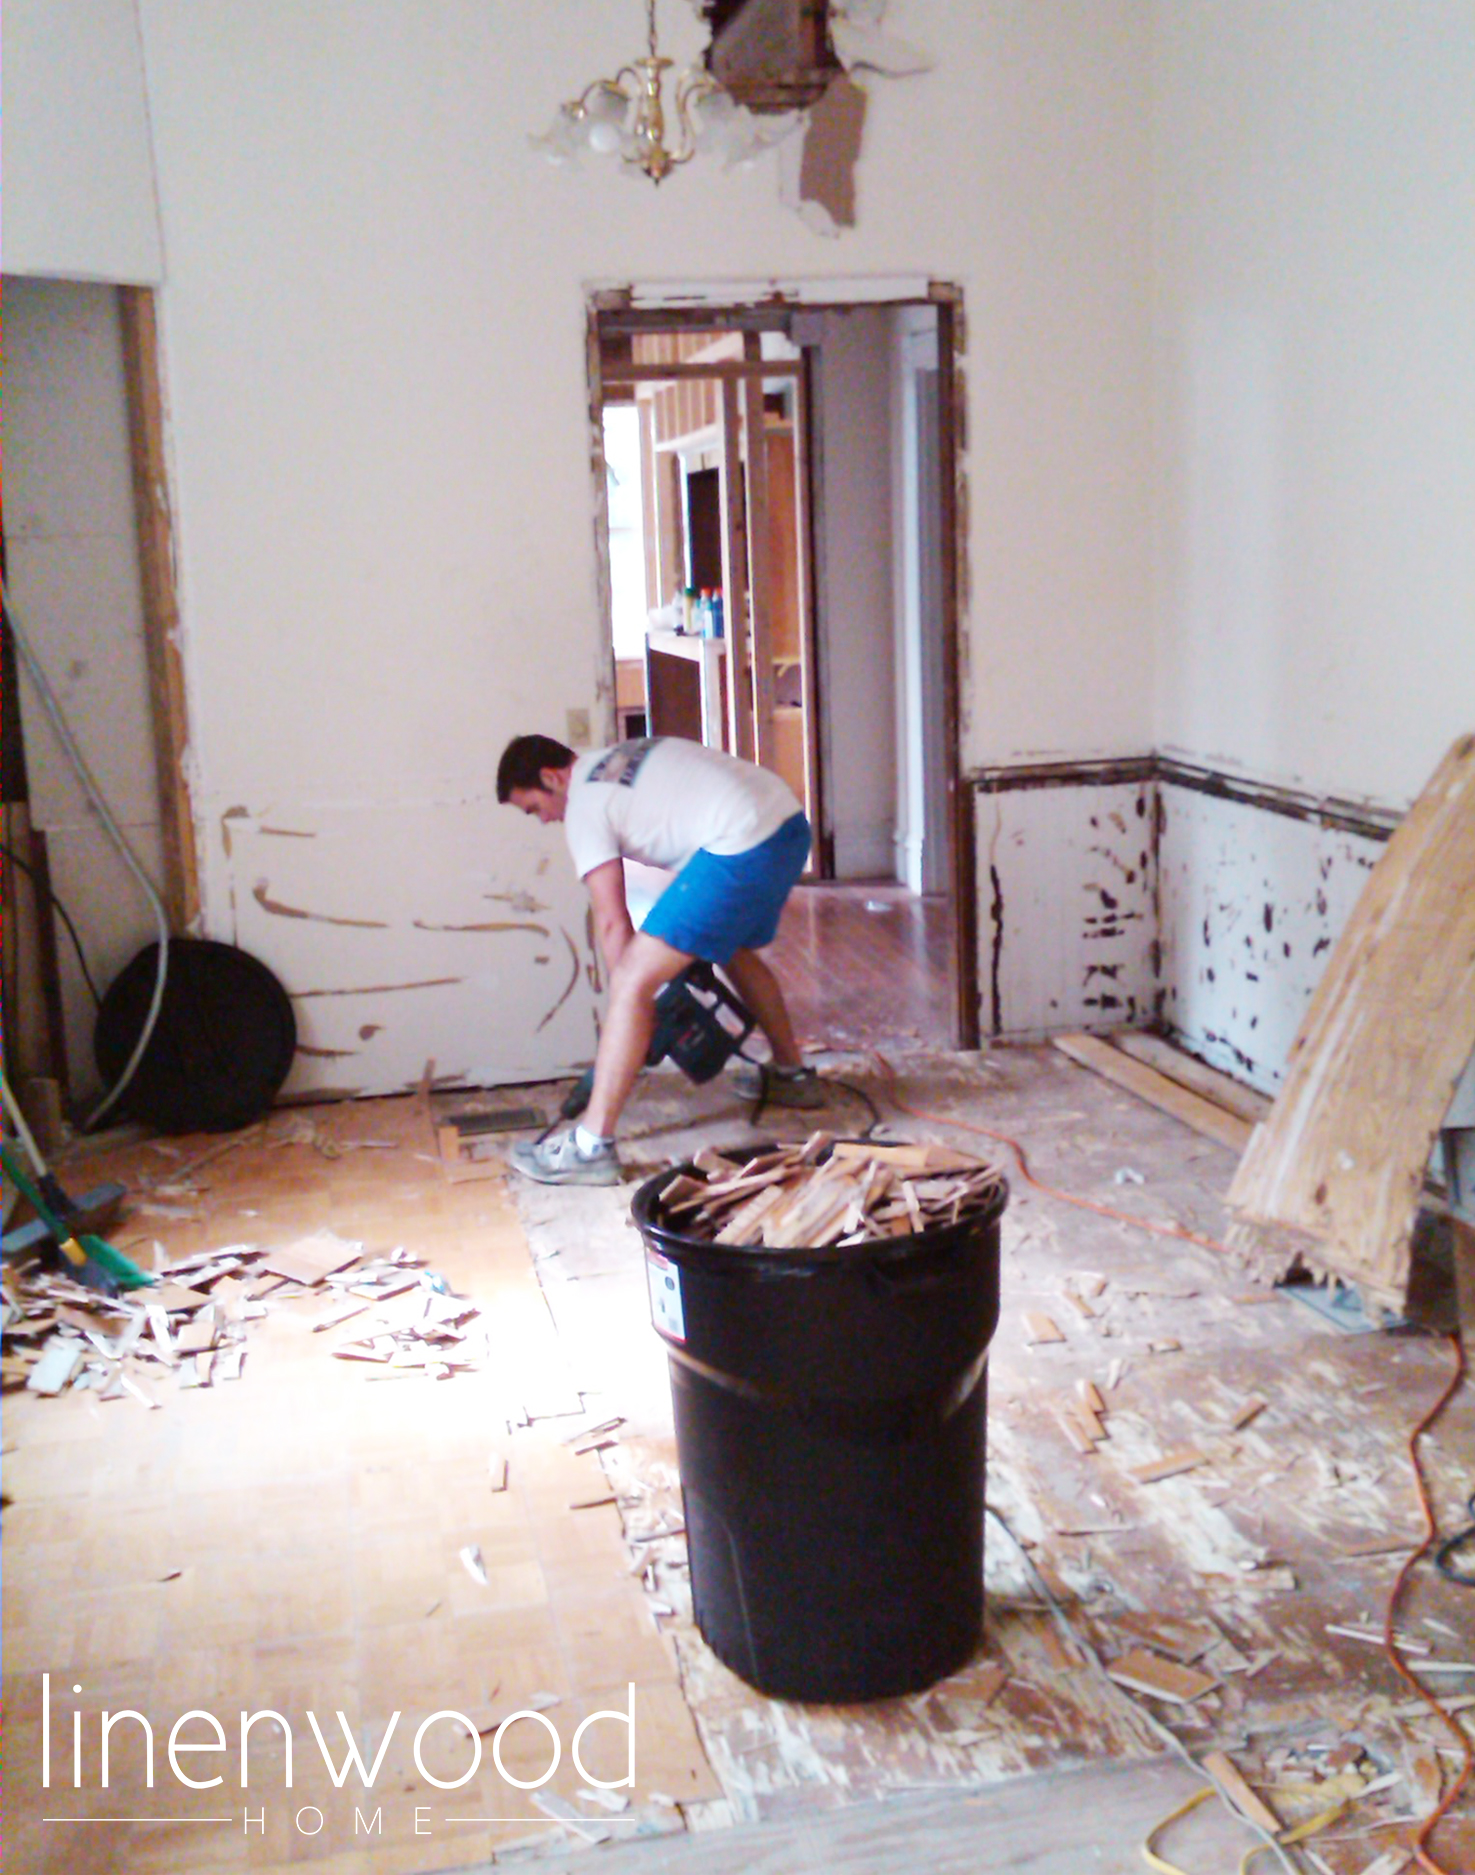 Robby working through all the random layers of flooring in the dining room. We did gain about 2 inches when it was all removed though!